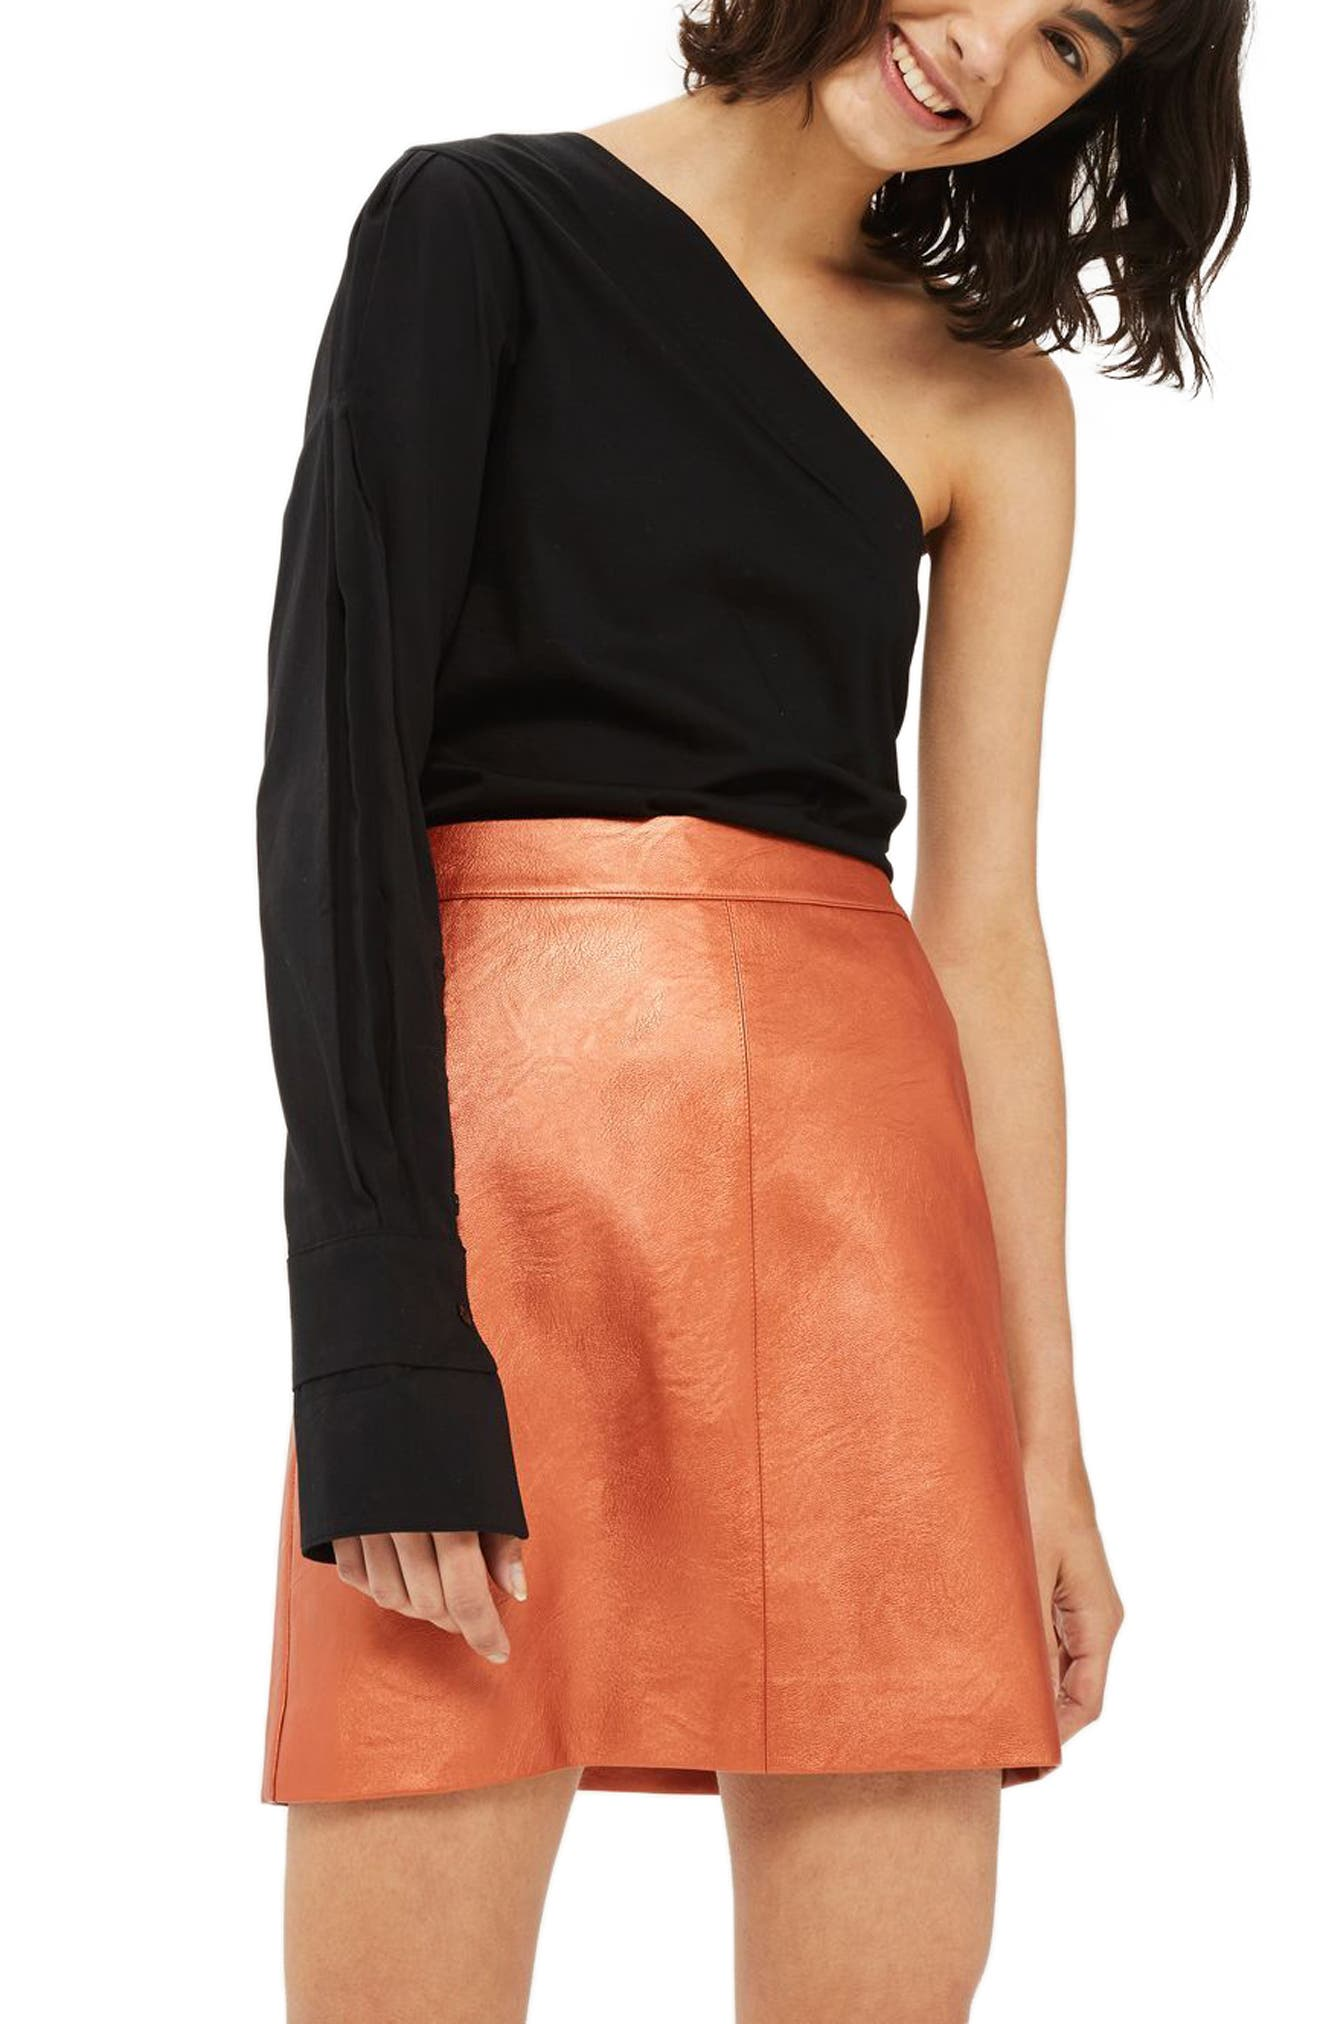 Topshop Faux Leather Skirt